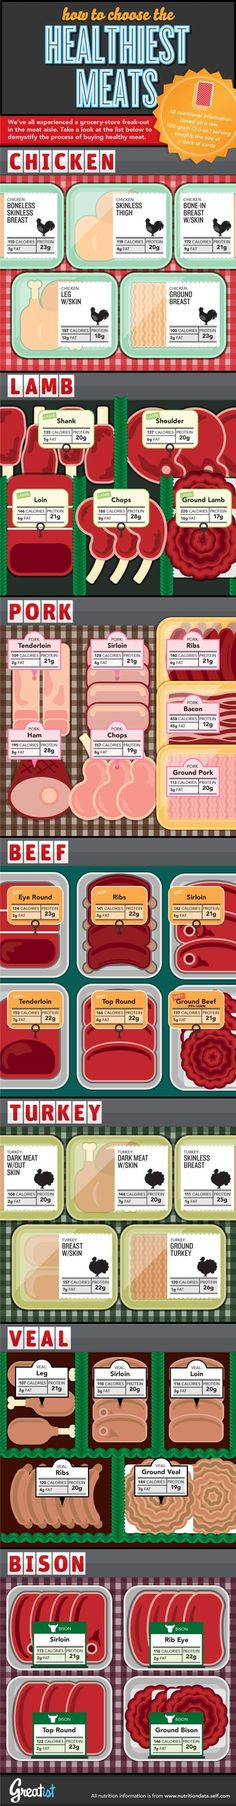 A handy guide to compare healthiness of meats found in the store. Based on a 3.5 oz serving roughly the size of a deck of cards.